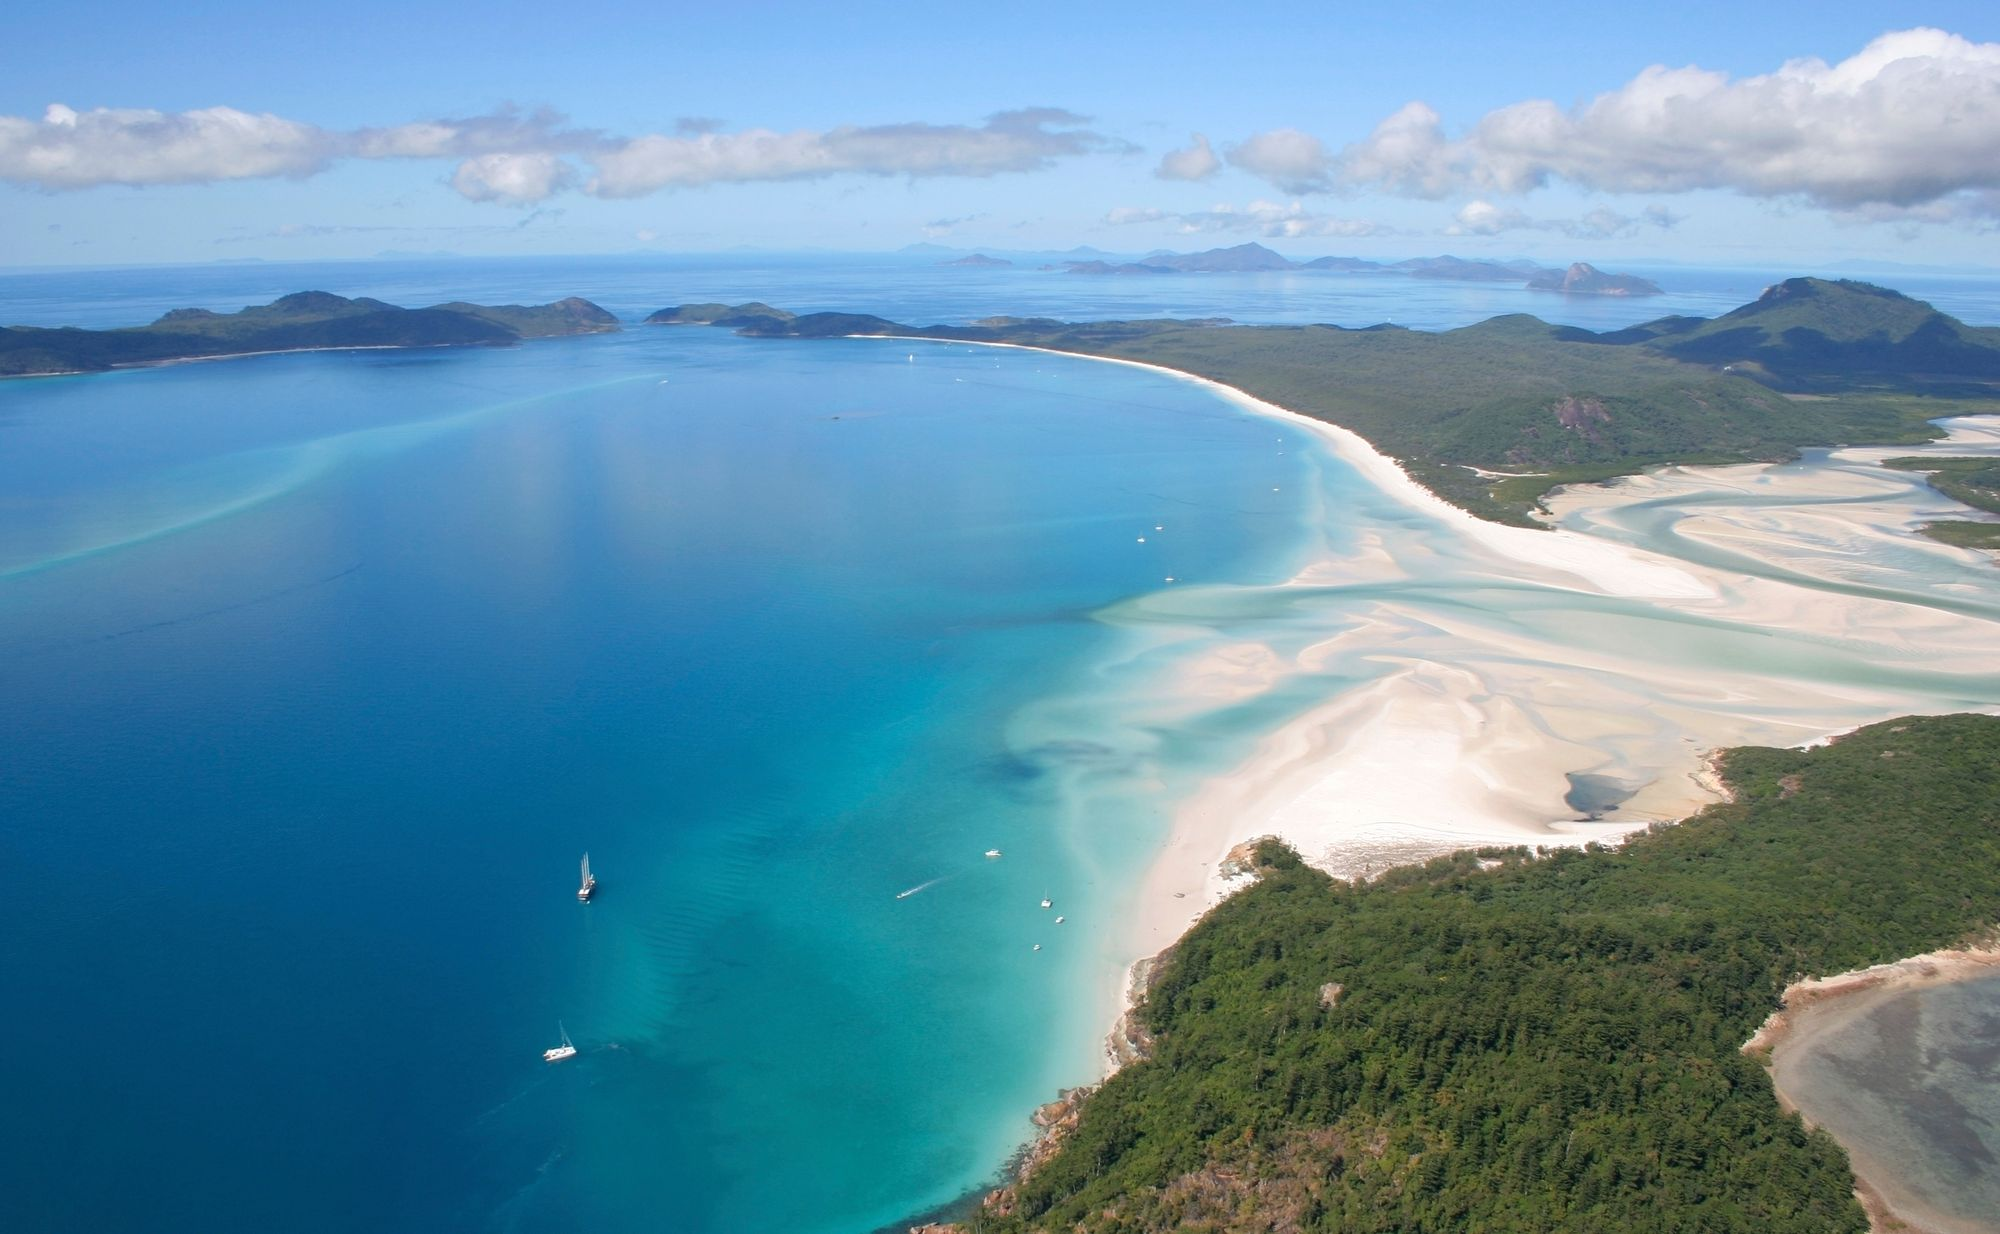 The best beaches in the world - Whitsunday Islands, Australia